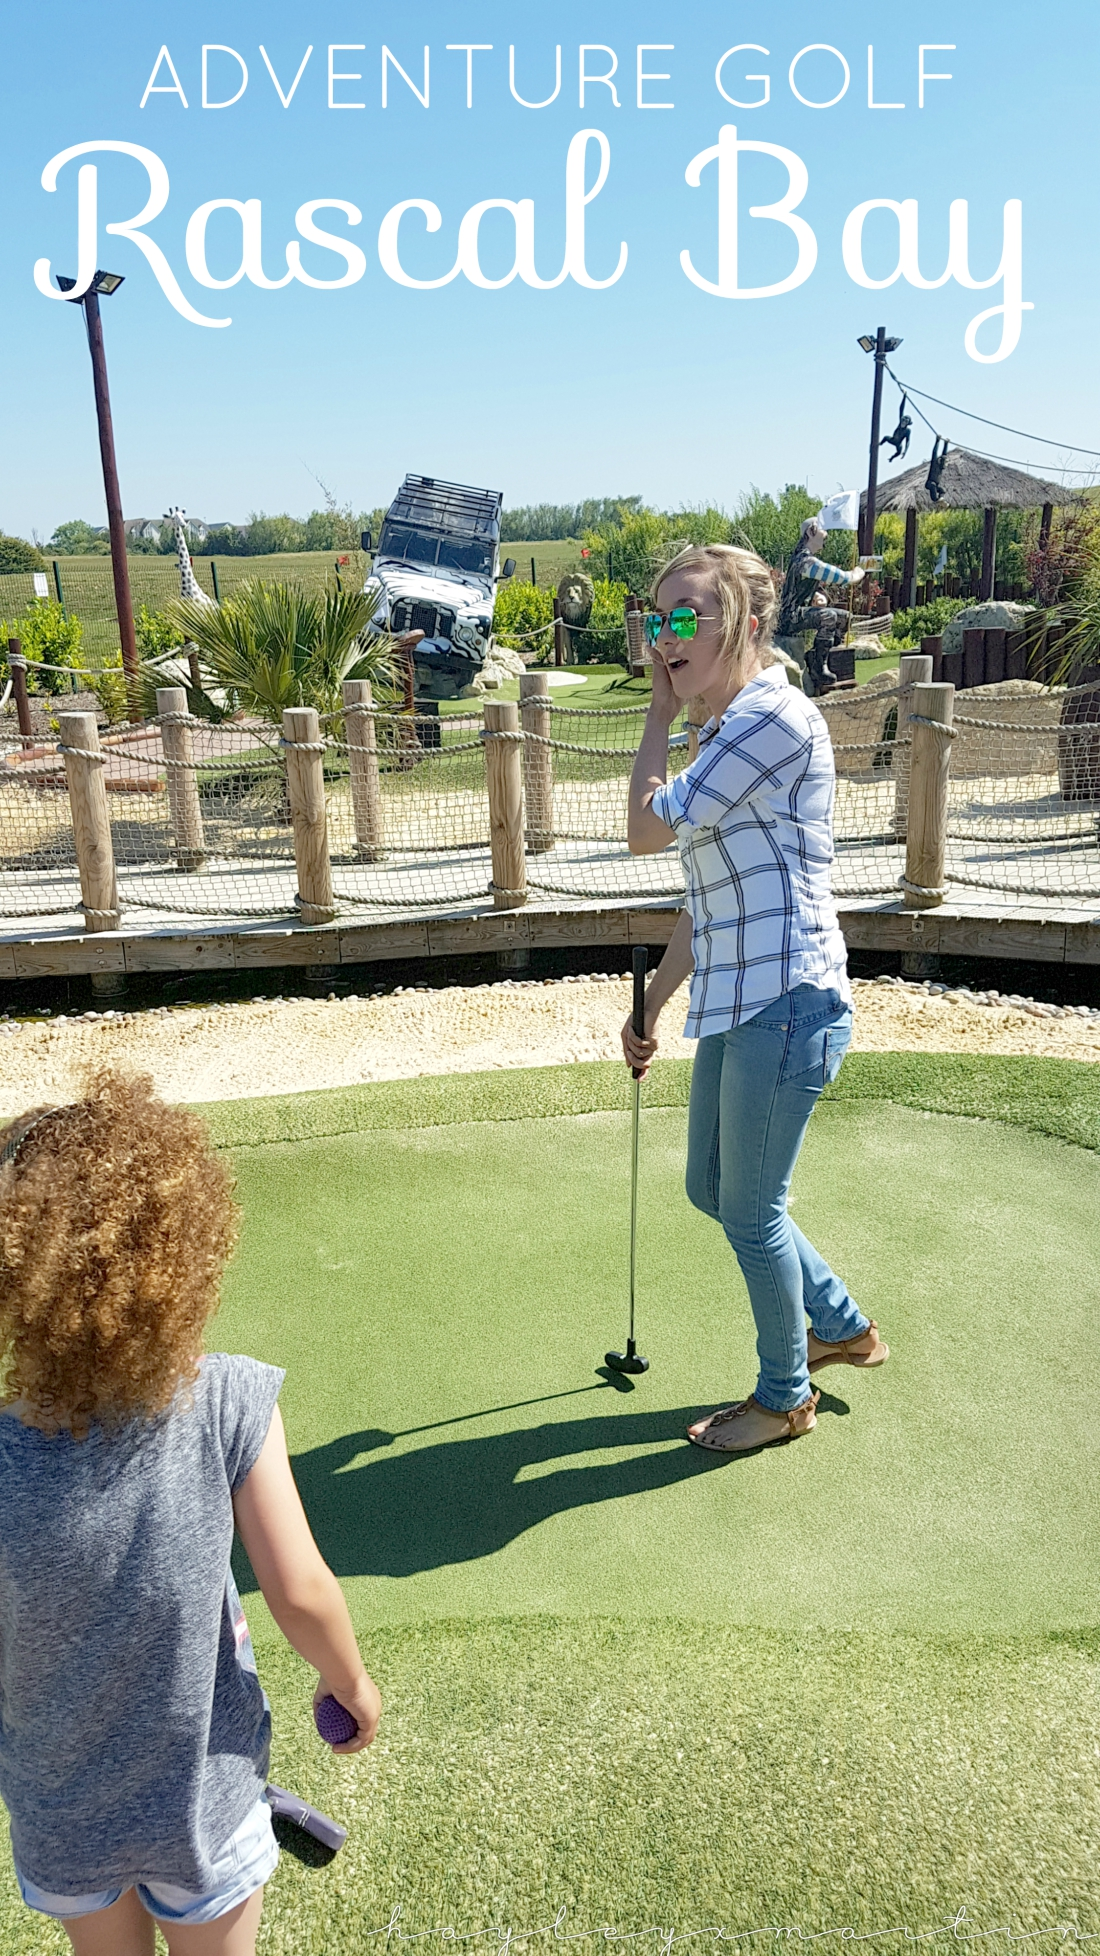 Adventure Golf at Rascal Bay -18 Hole Course | Manston, Kent